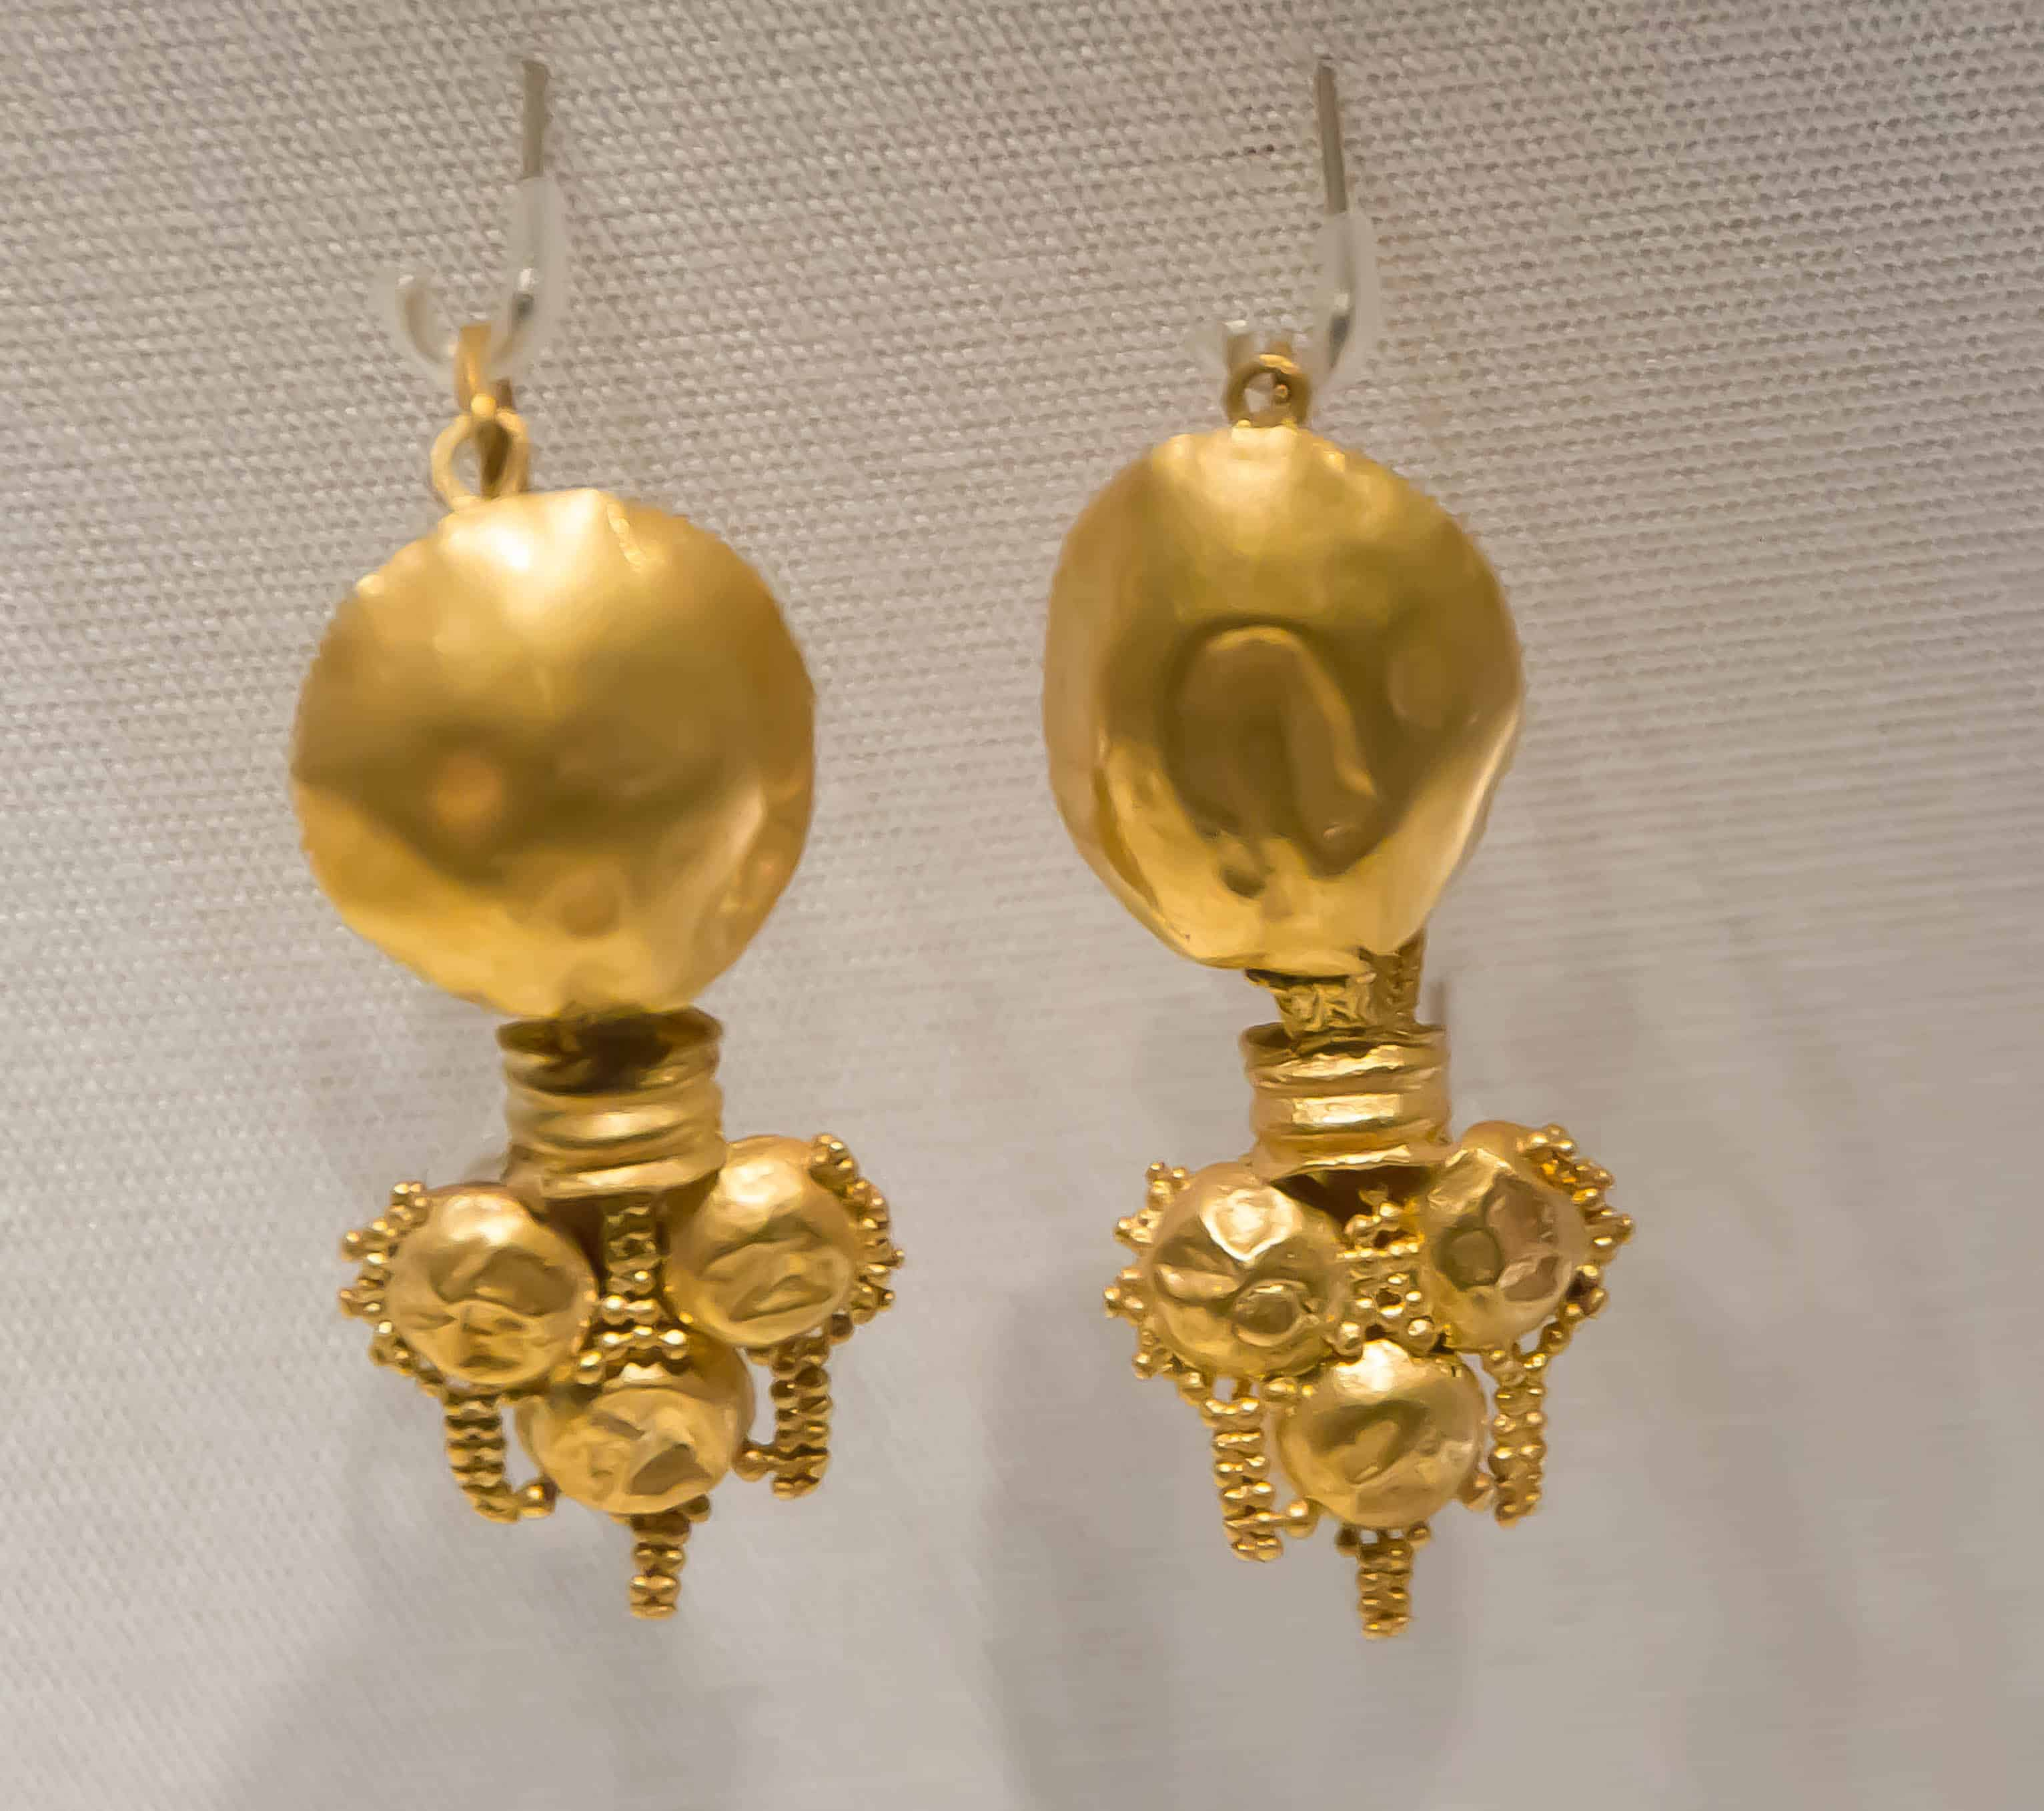 Ancient Golden Earrings.jpg